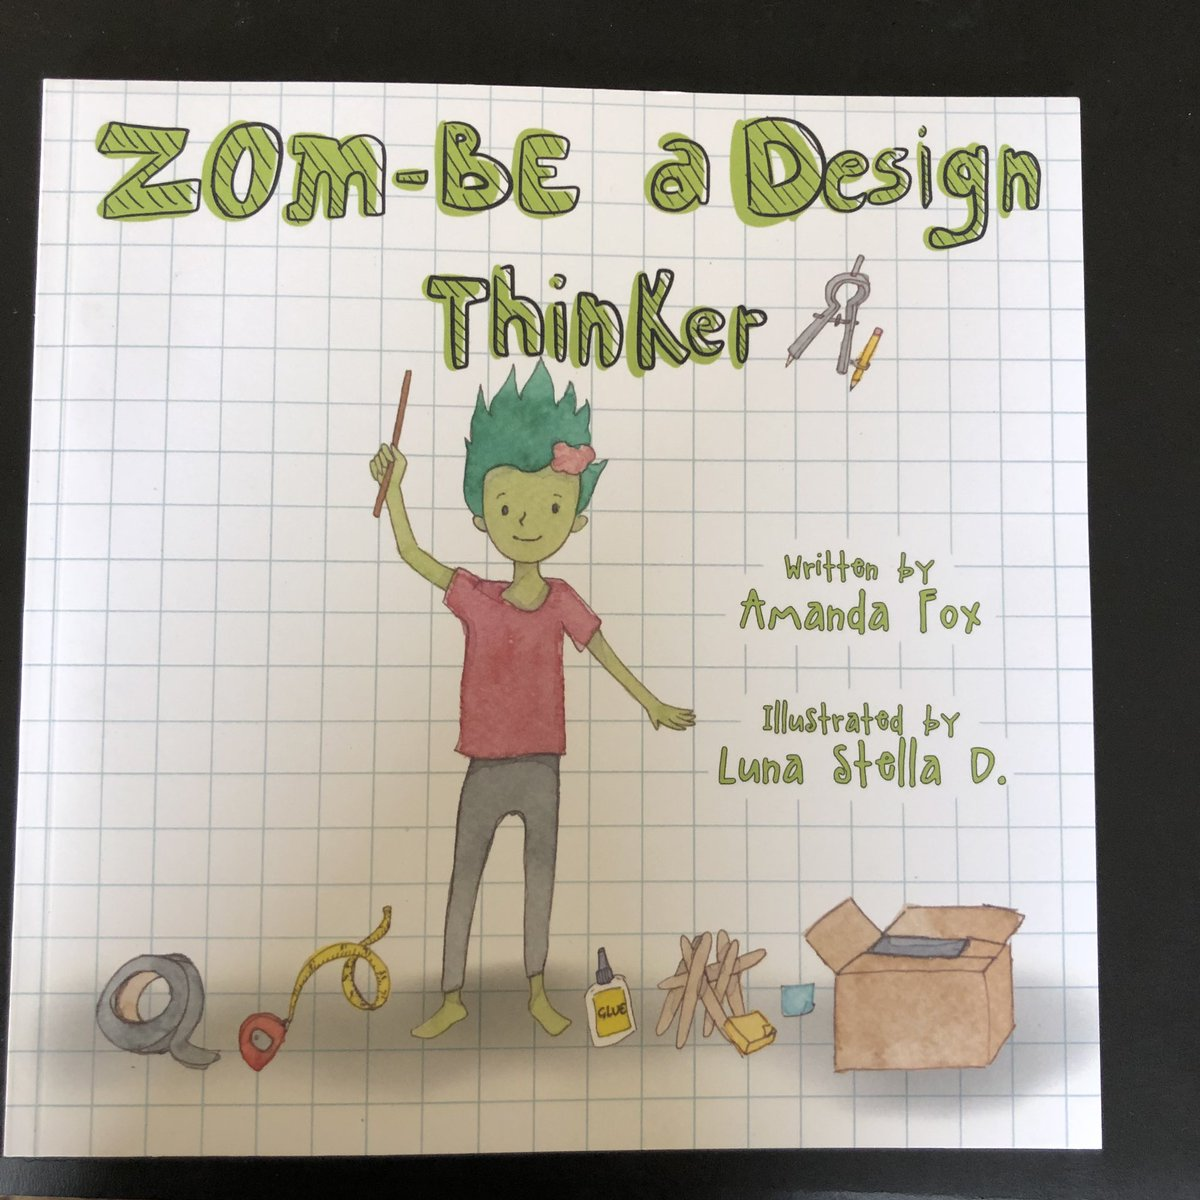 @Zip_the_ZomBe @AmandaFoxSTEM my book came today! I'm excited to dive in and learn.